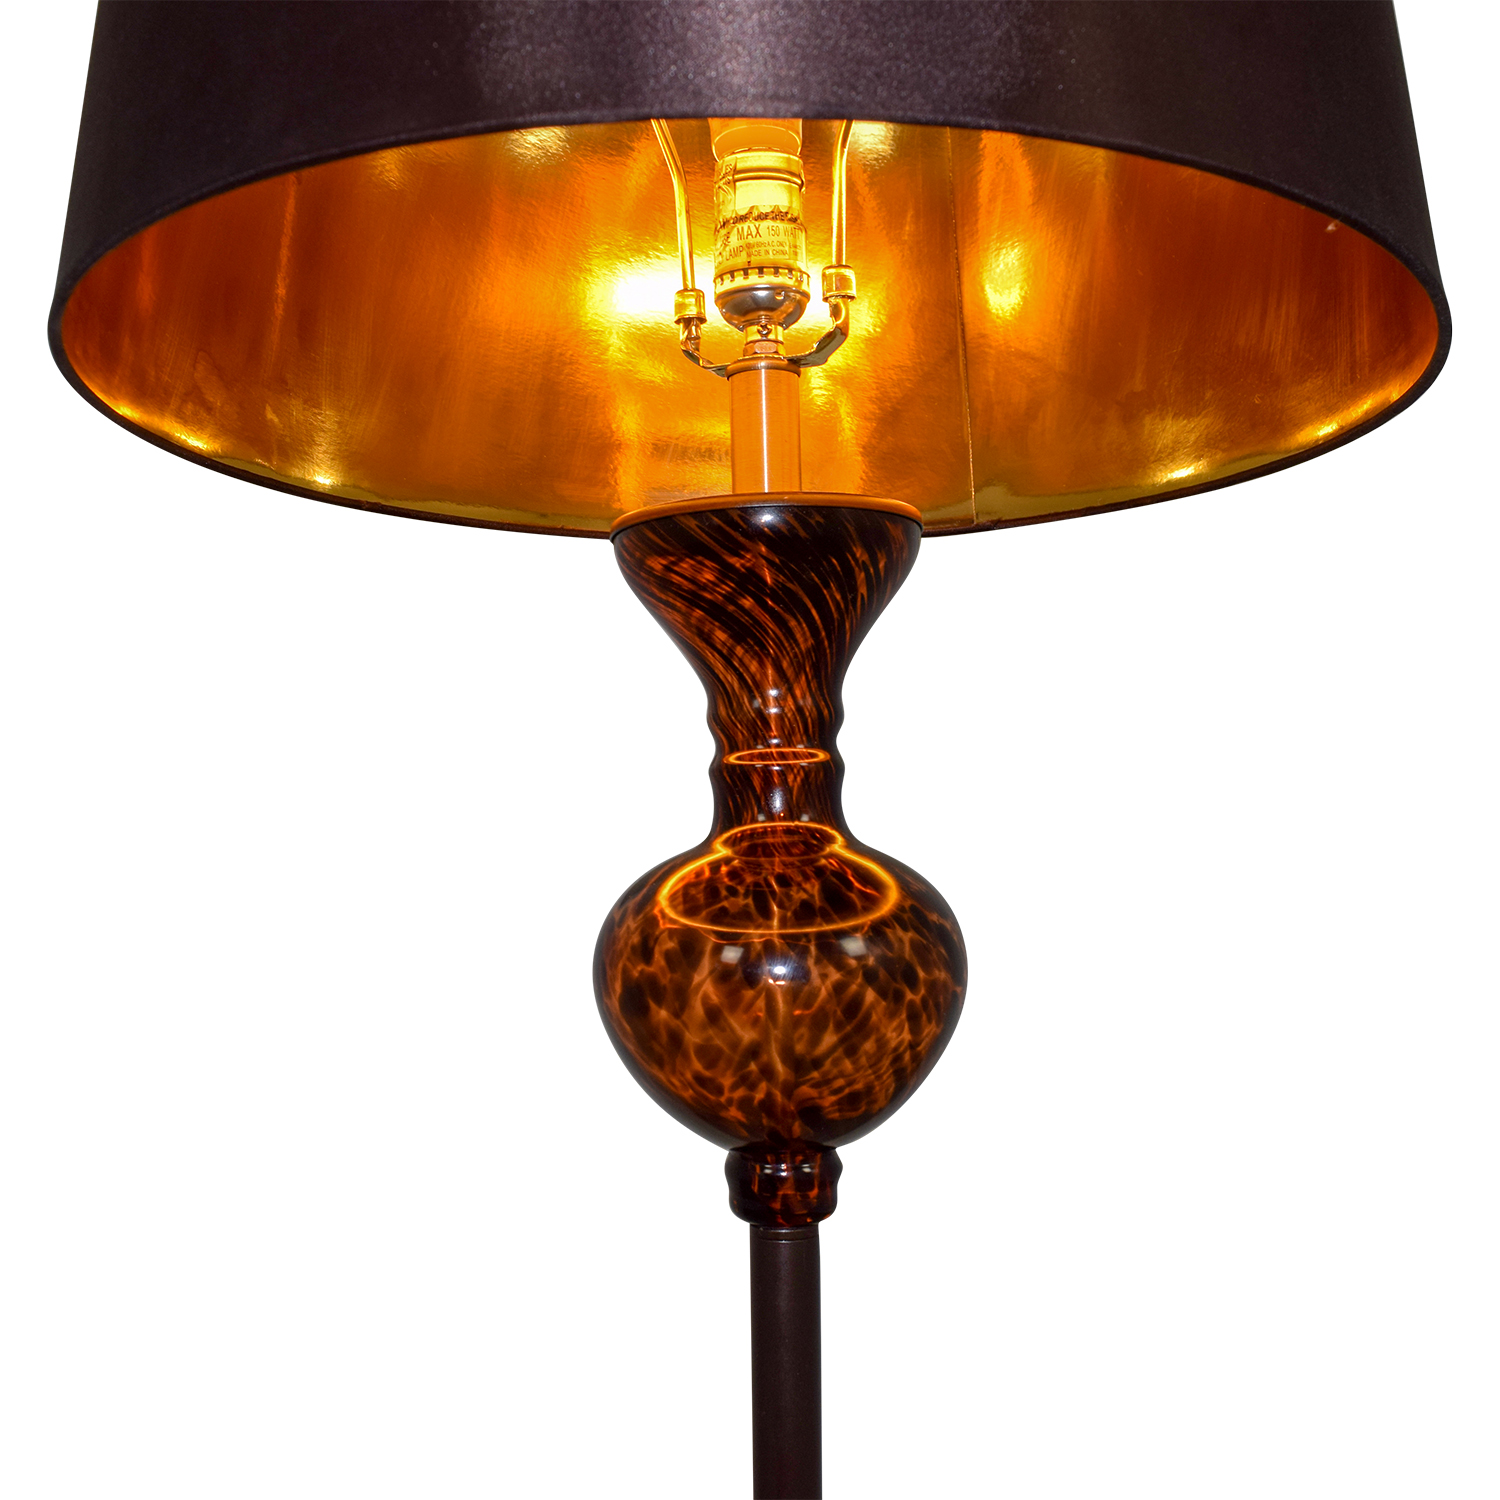 78 off pier 1 pier 1 imports amber tall lamp decor